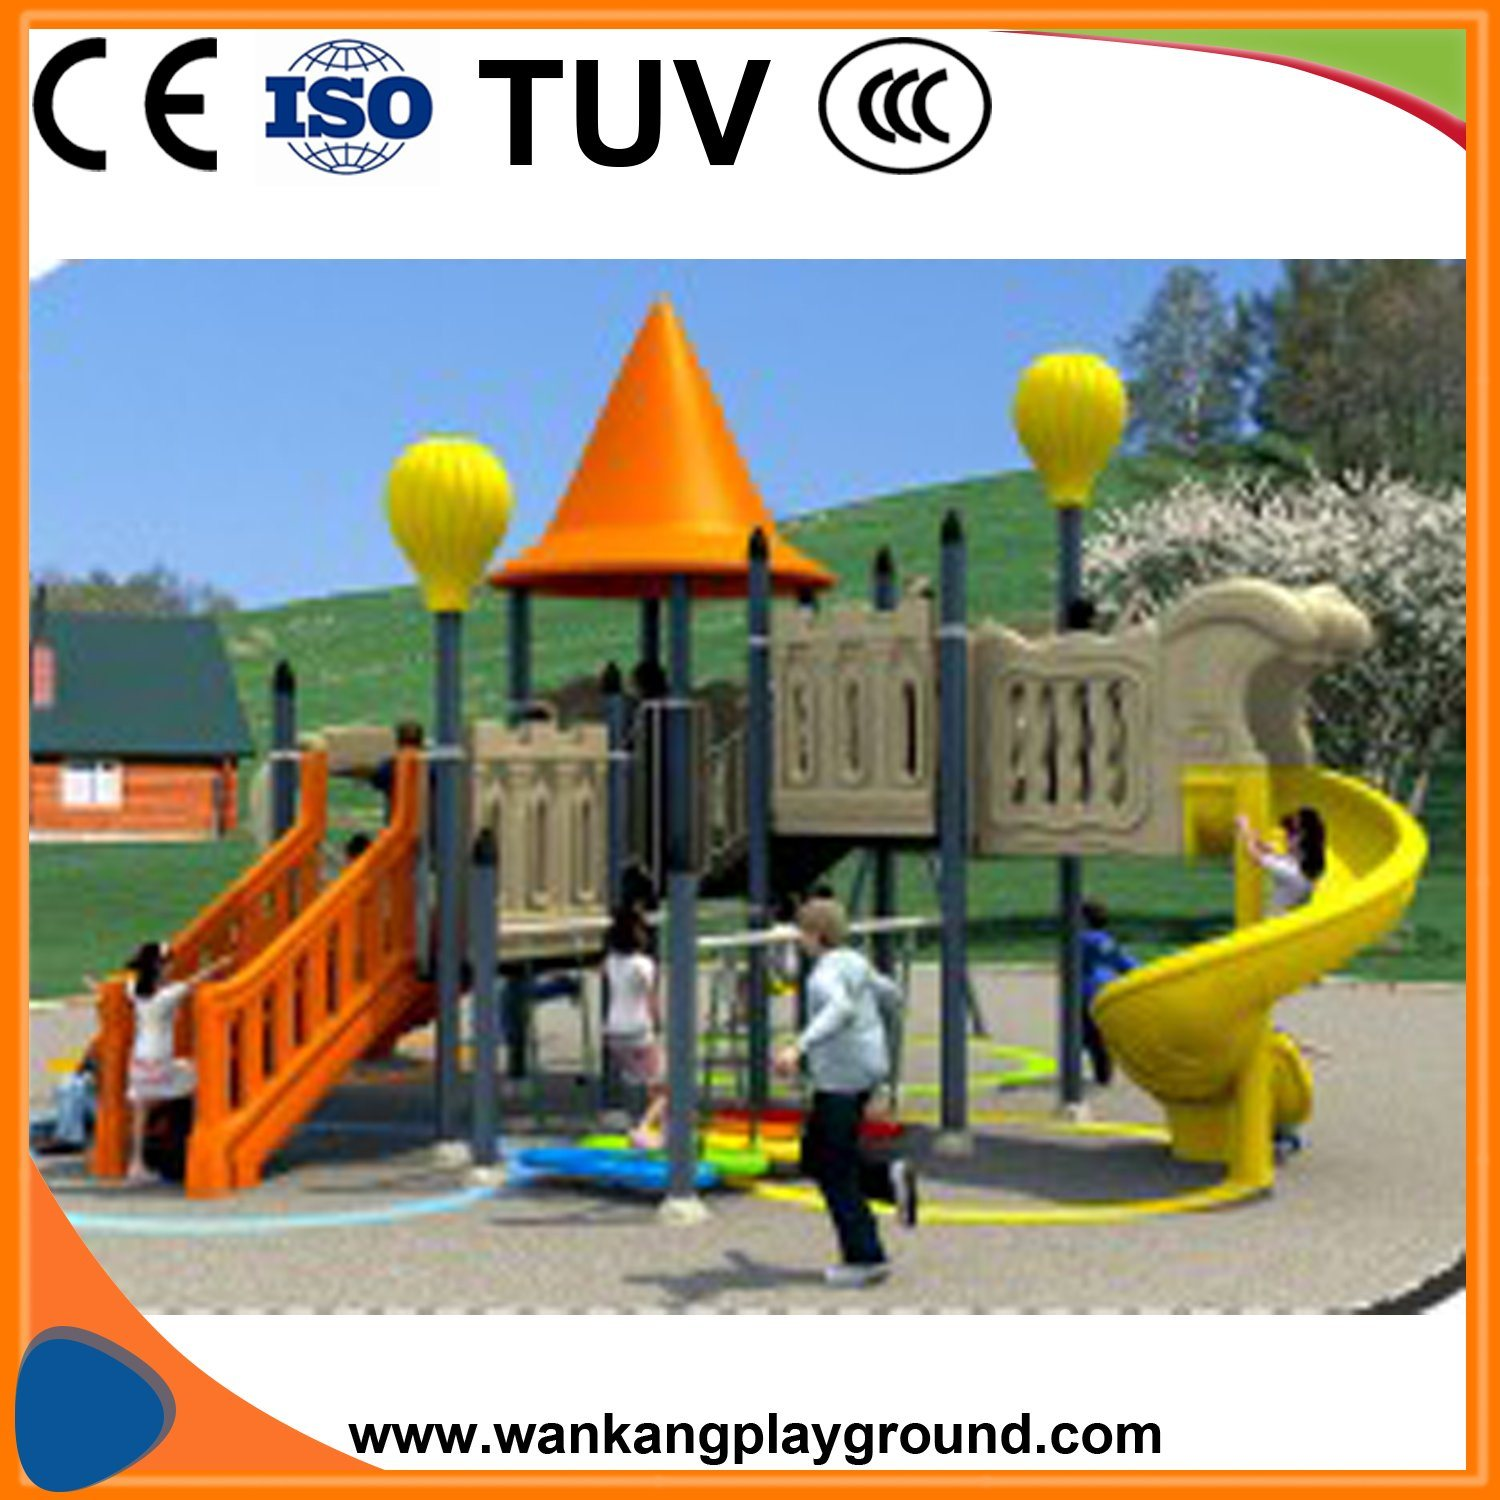 Nursery School Sport Playground Slide Outdoor Play Equipment Wk 1112